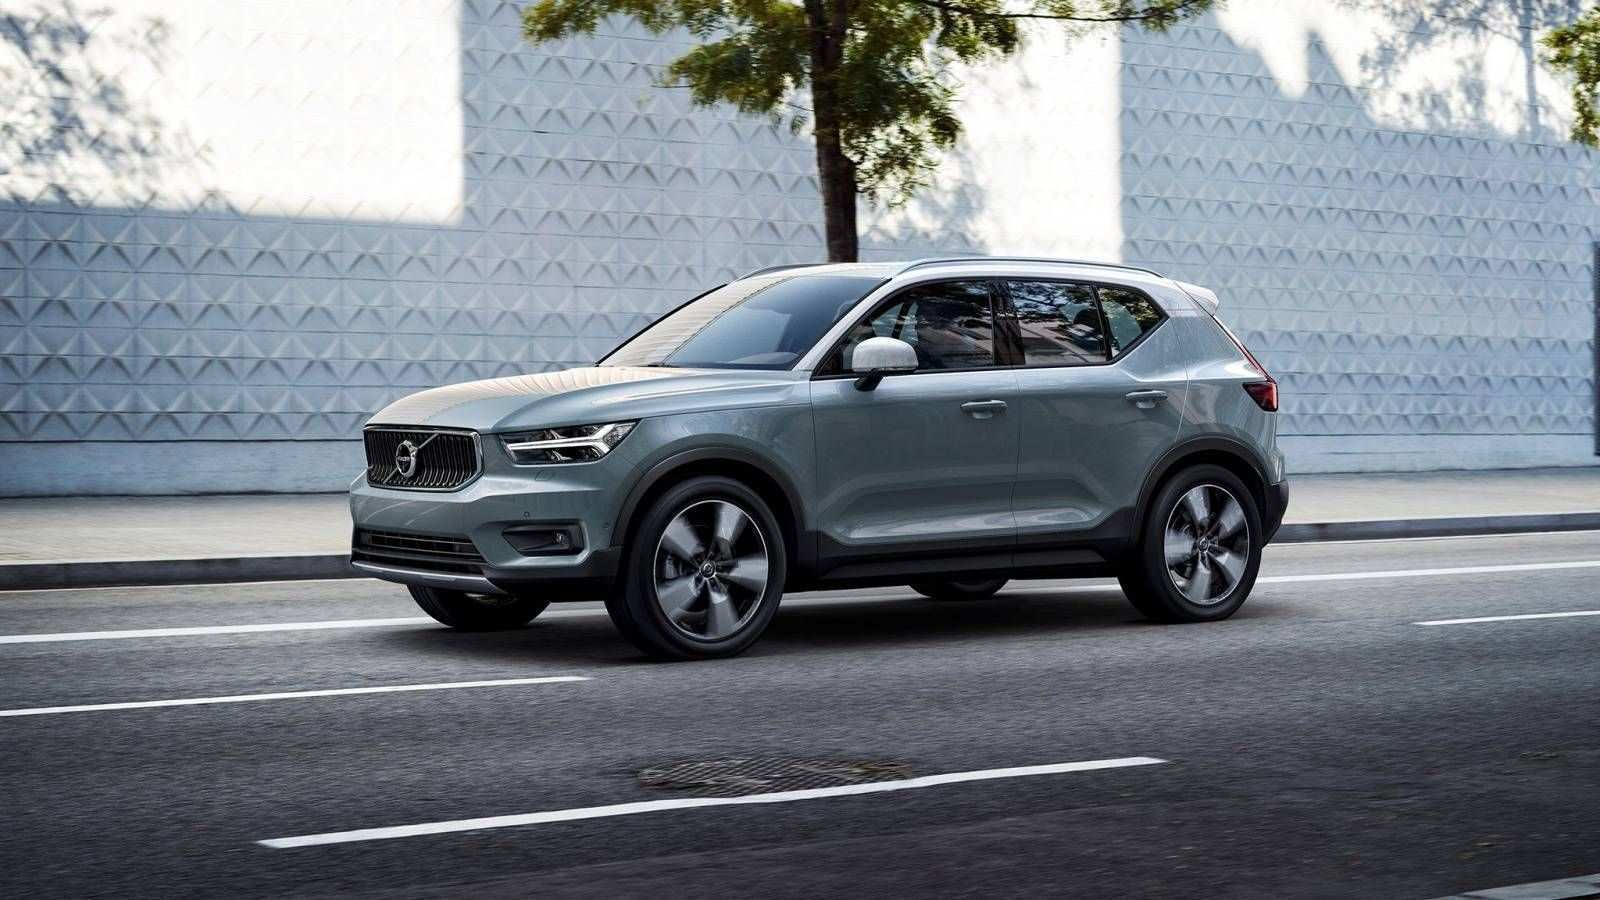 72 Great 2019 Volvo Xc40 Owners Manual First Drive for 2019 Volvo Xc40 Owners Manual